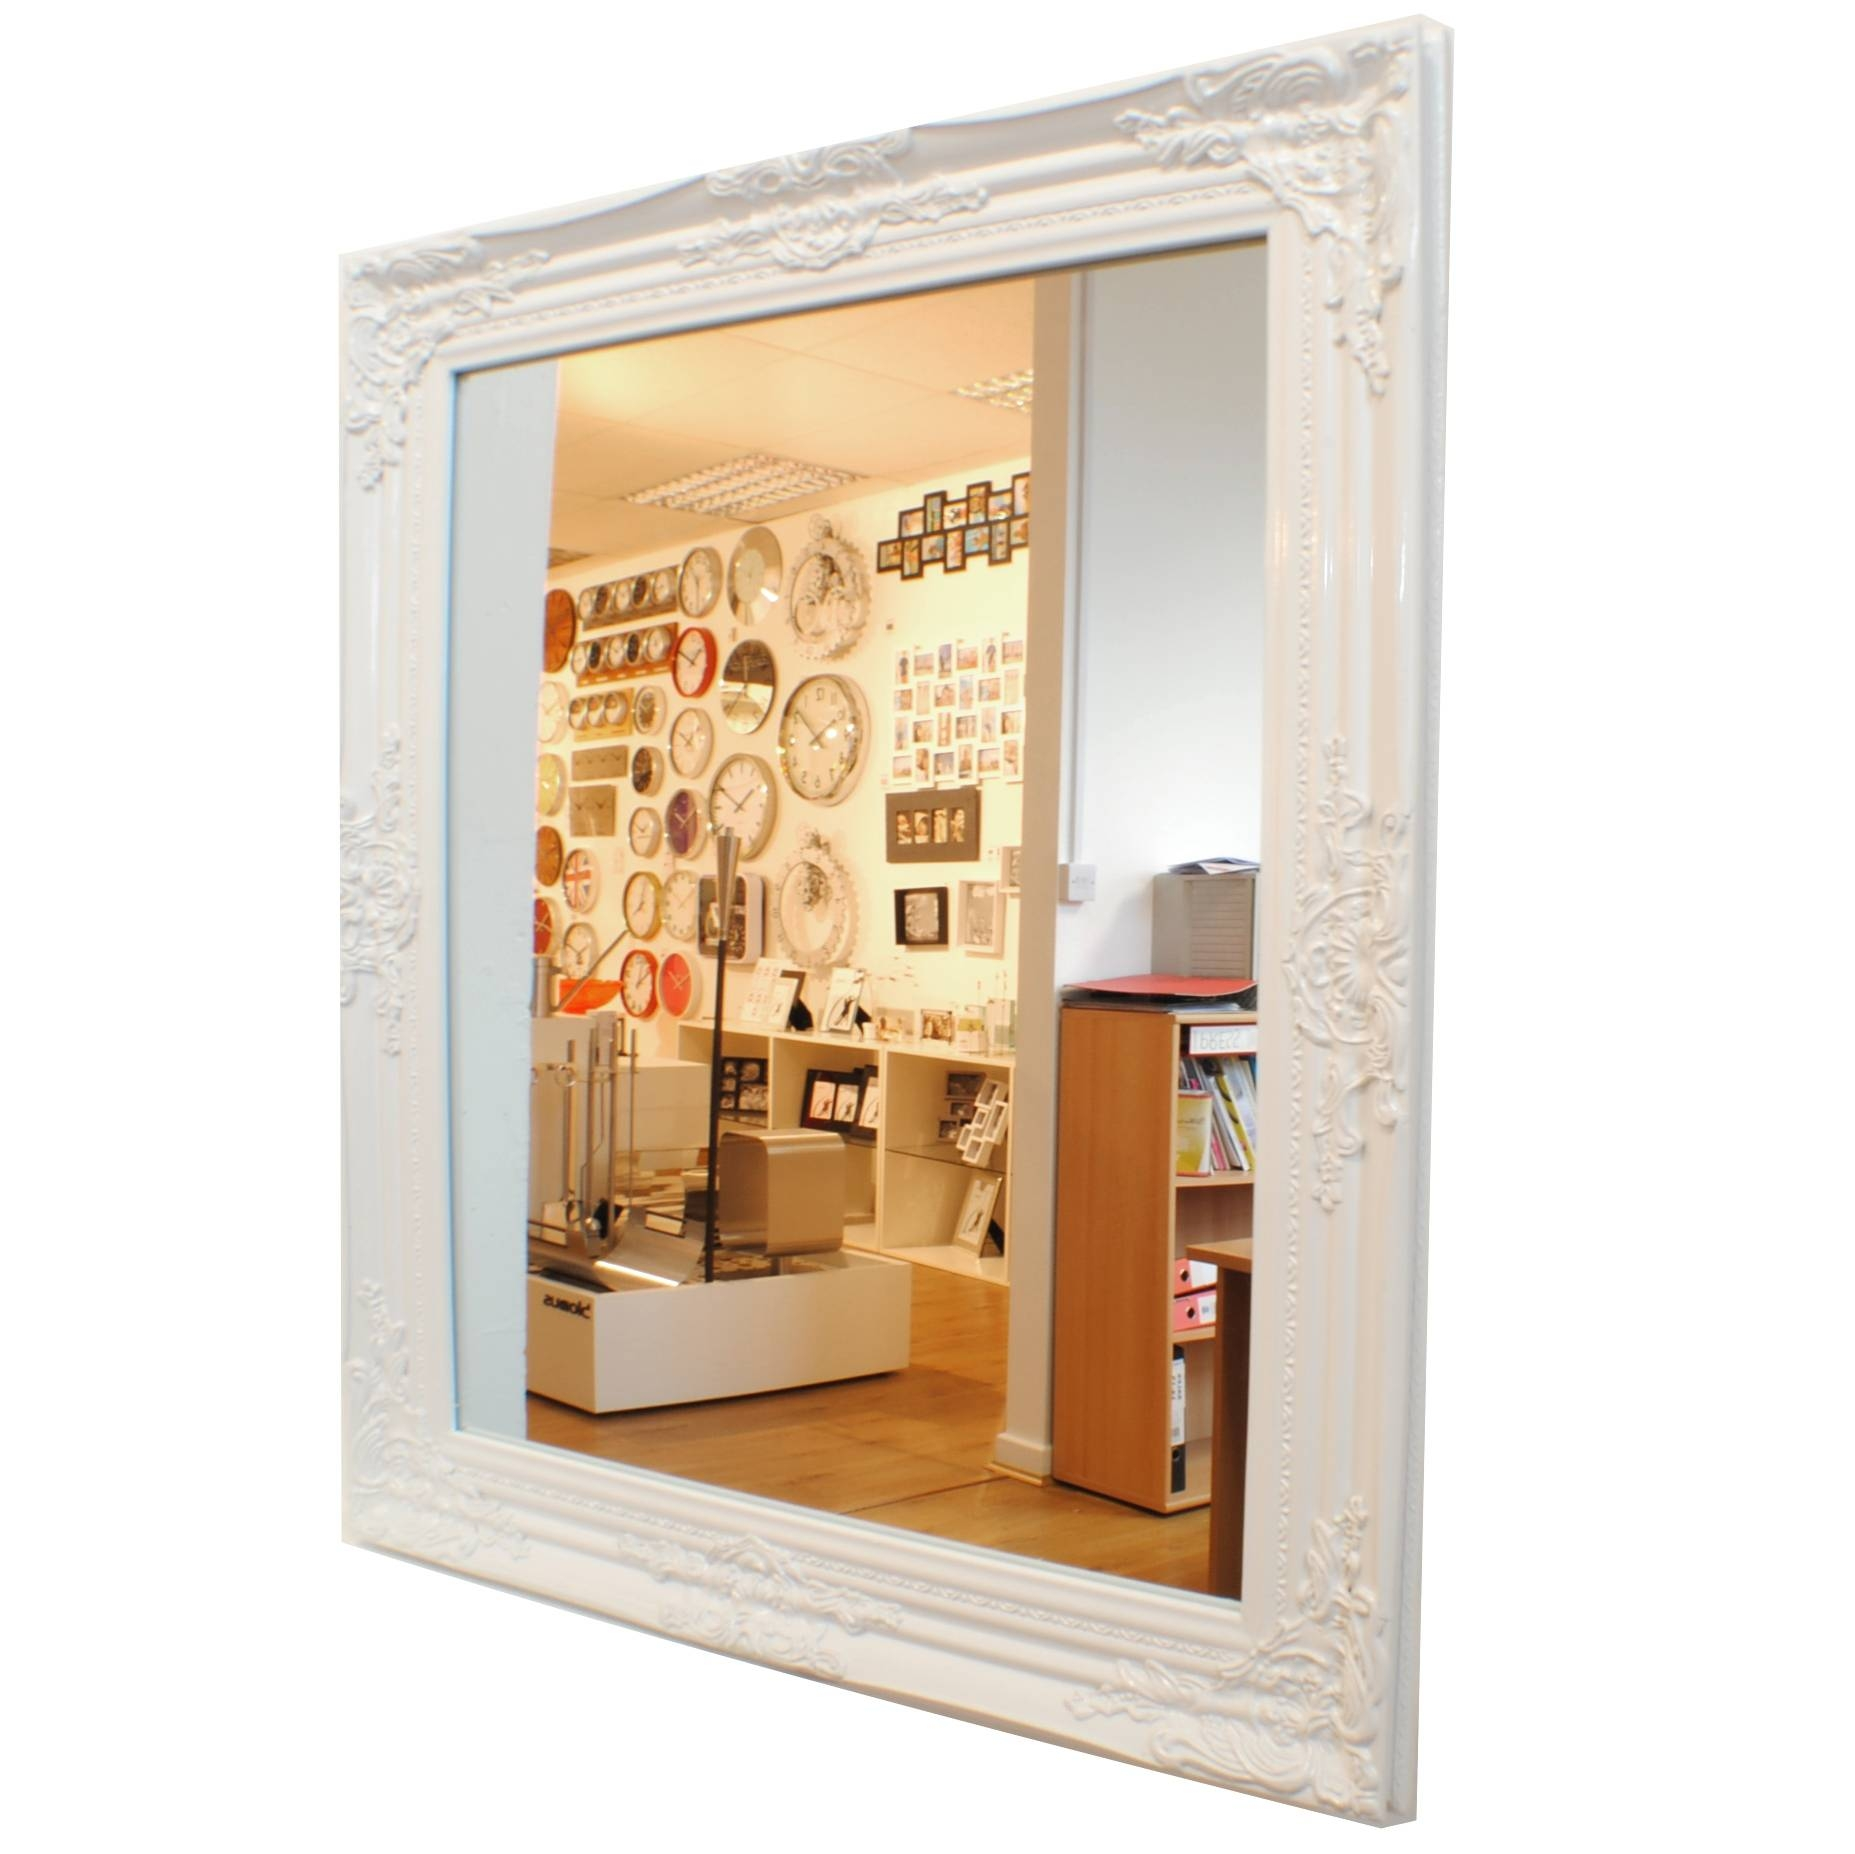 Classic Baroque Vintage Gloss White Wall Mirror Uk intended for Baroque White Mirrors (Image 12 of 25)